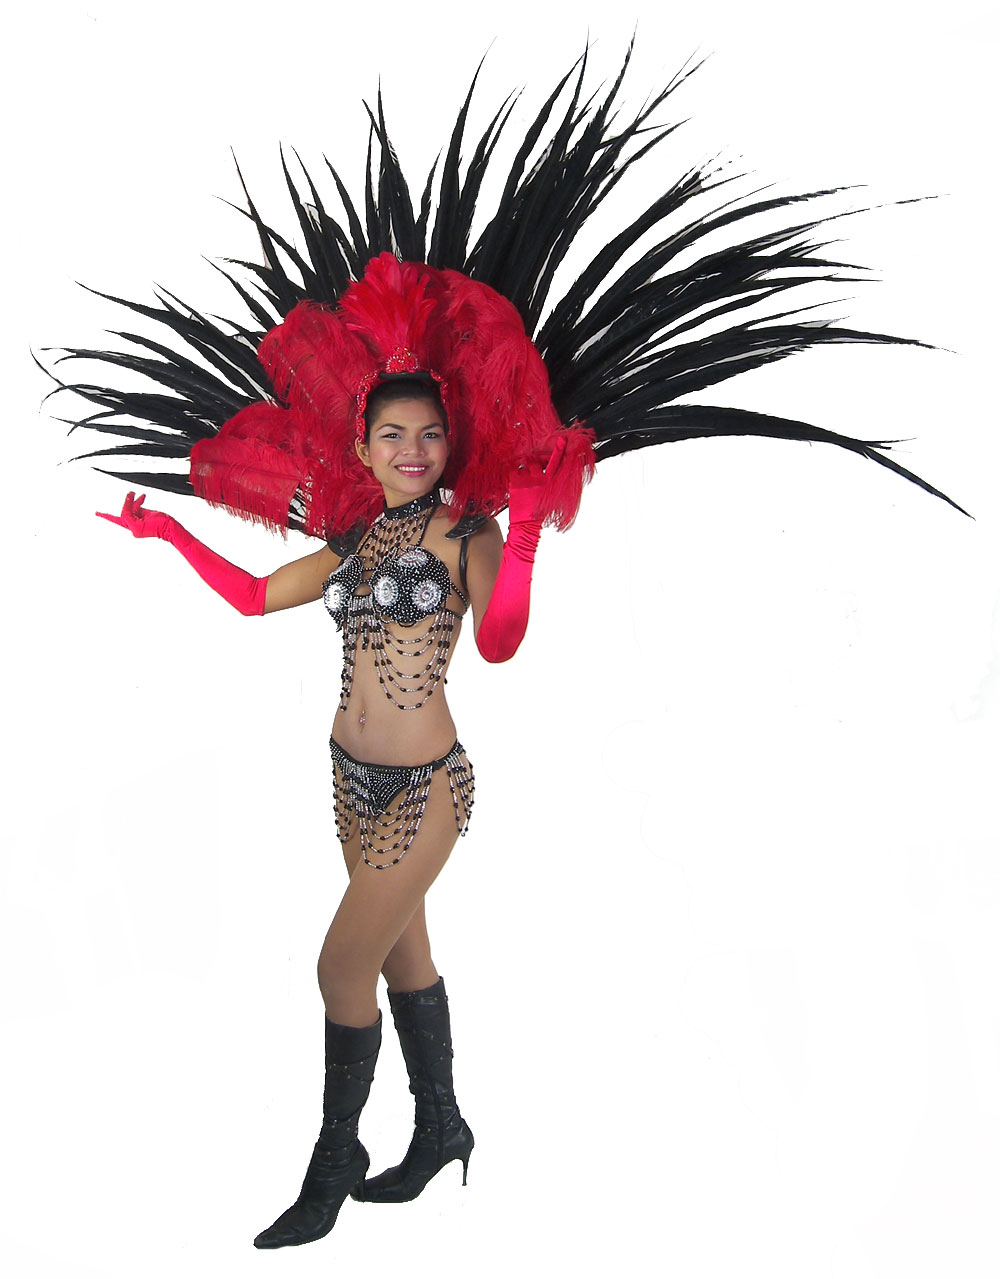 https://michaeljacksoncelebrityclothing.com/stage-cabaret-circus/RT03-las-vegas-show-girl-red-feather-back-harness-costume.jpg